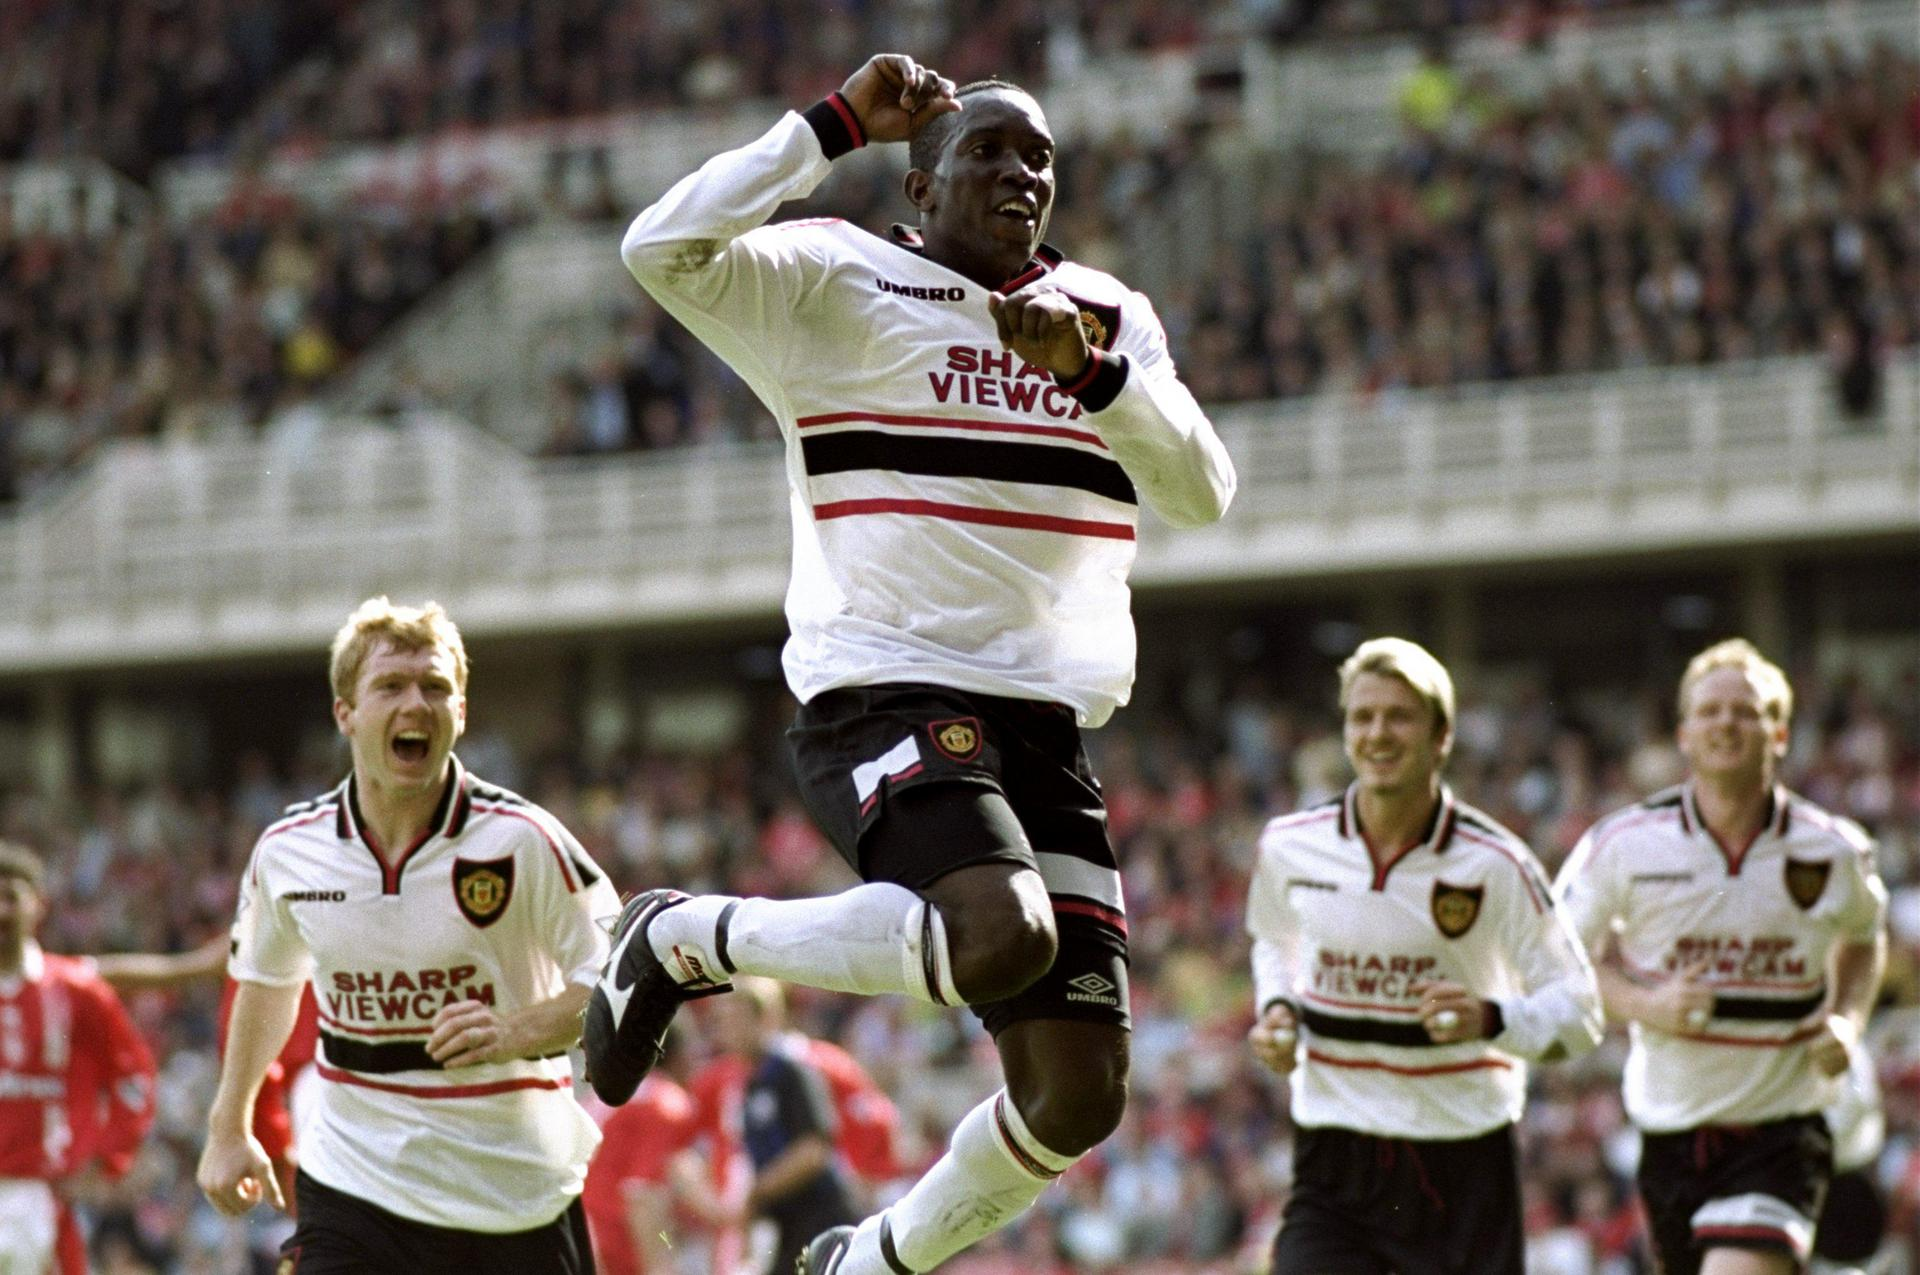 Dwight Yorke celebrates scoring for Man Utd.